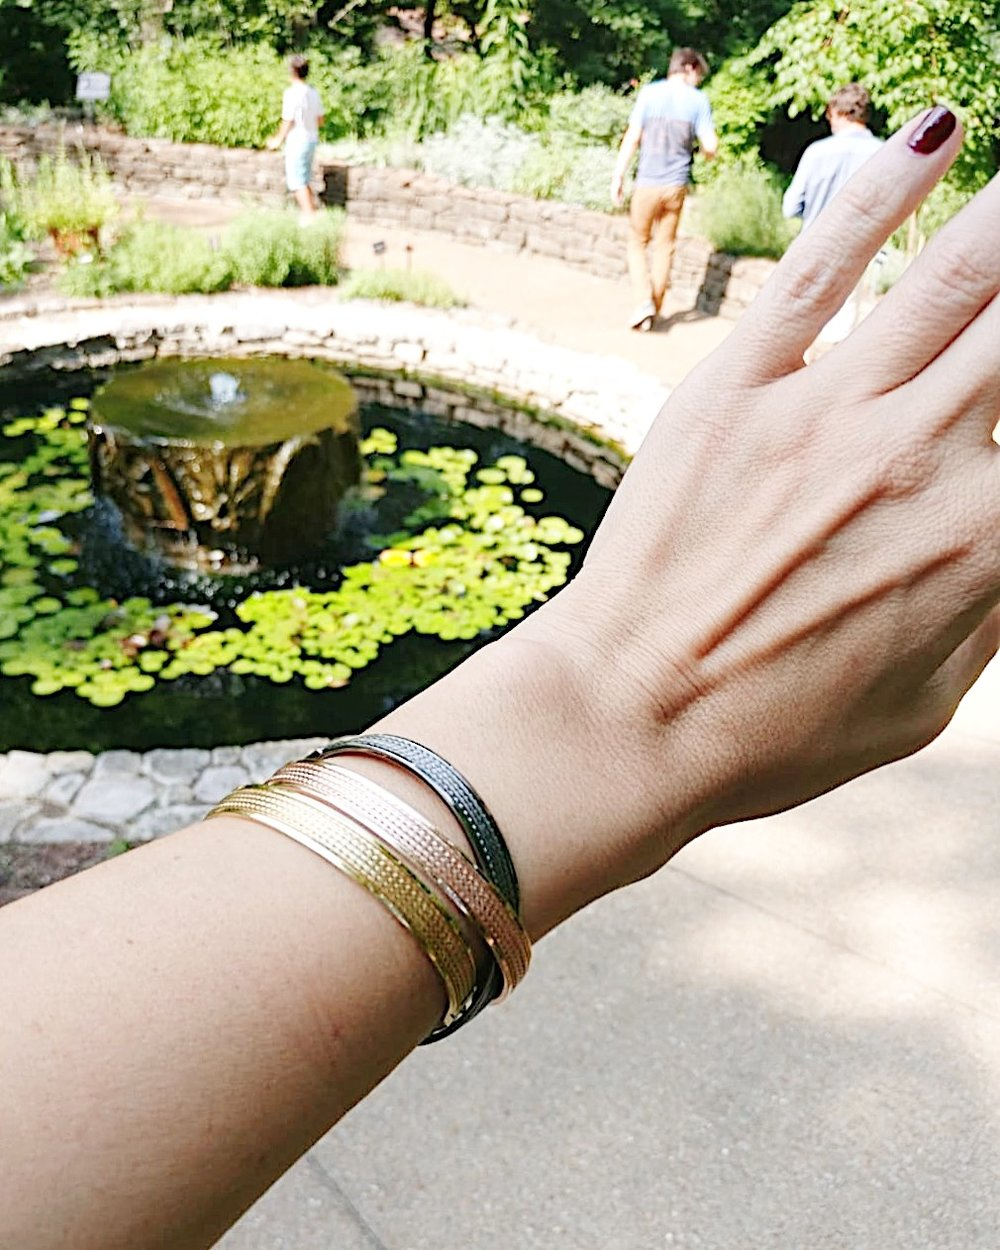 The Muse cuff is an absolute stunner and very much at home here at Cheekwood in Nashville.